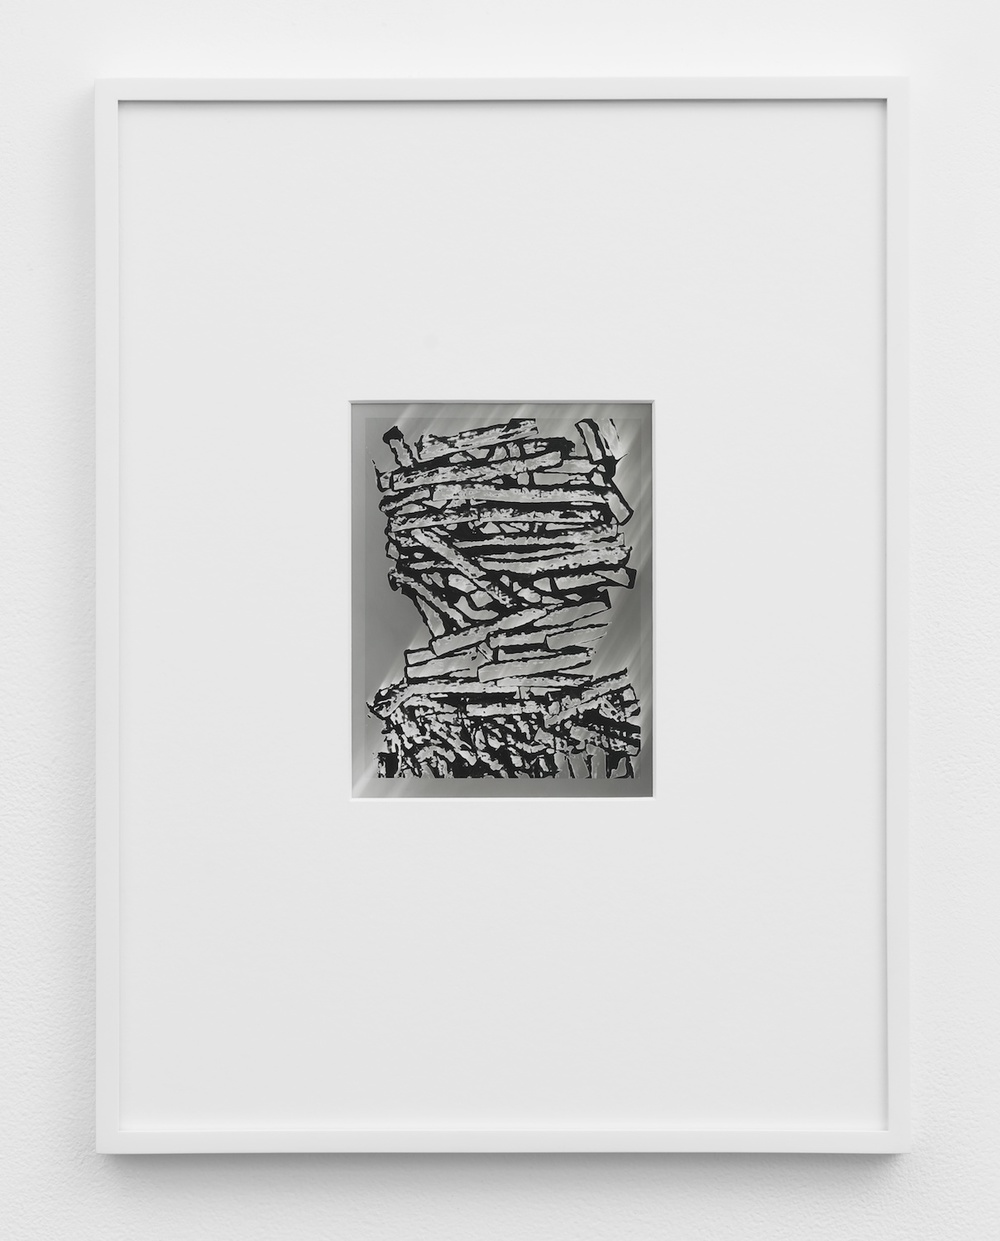 "Anthony Pearson Untitled (Solarization) 2011 Solarized silver gelatin photograph in artist frame 17 1/2"" x 13 1/4"" x 3/4"" AP277"